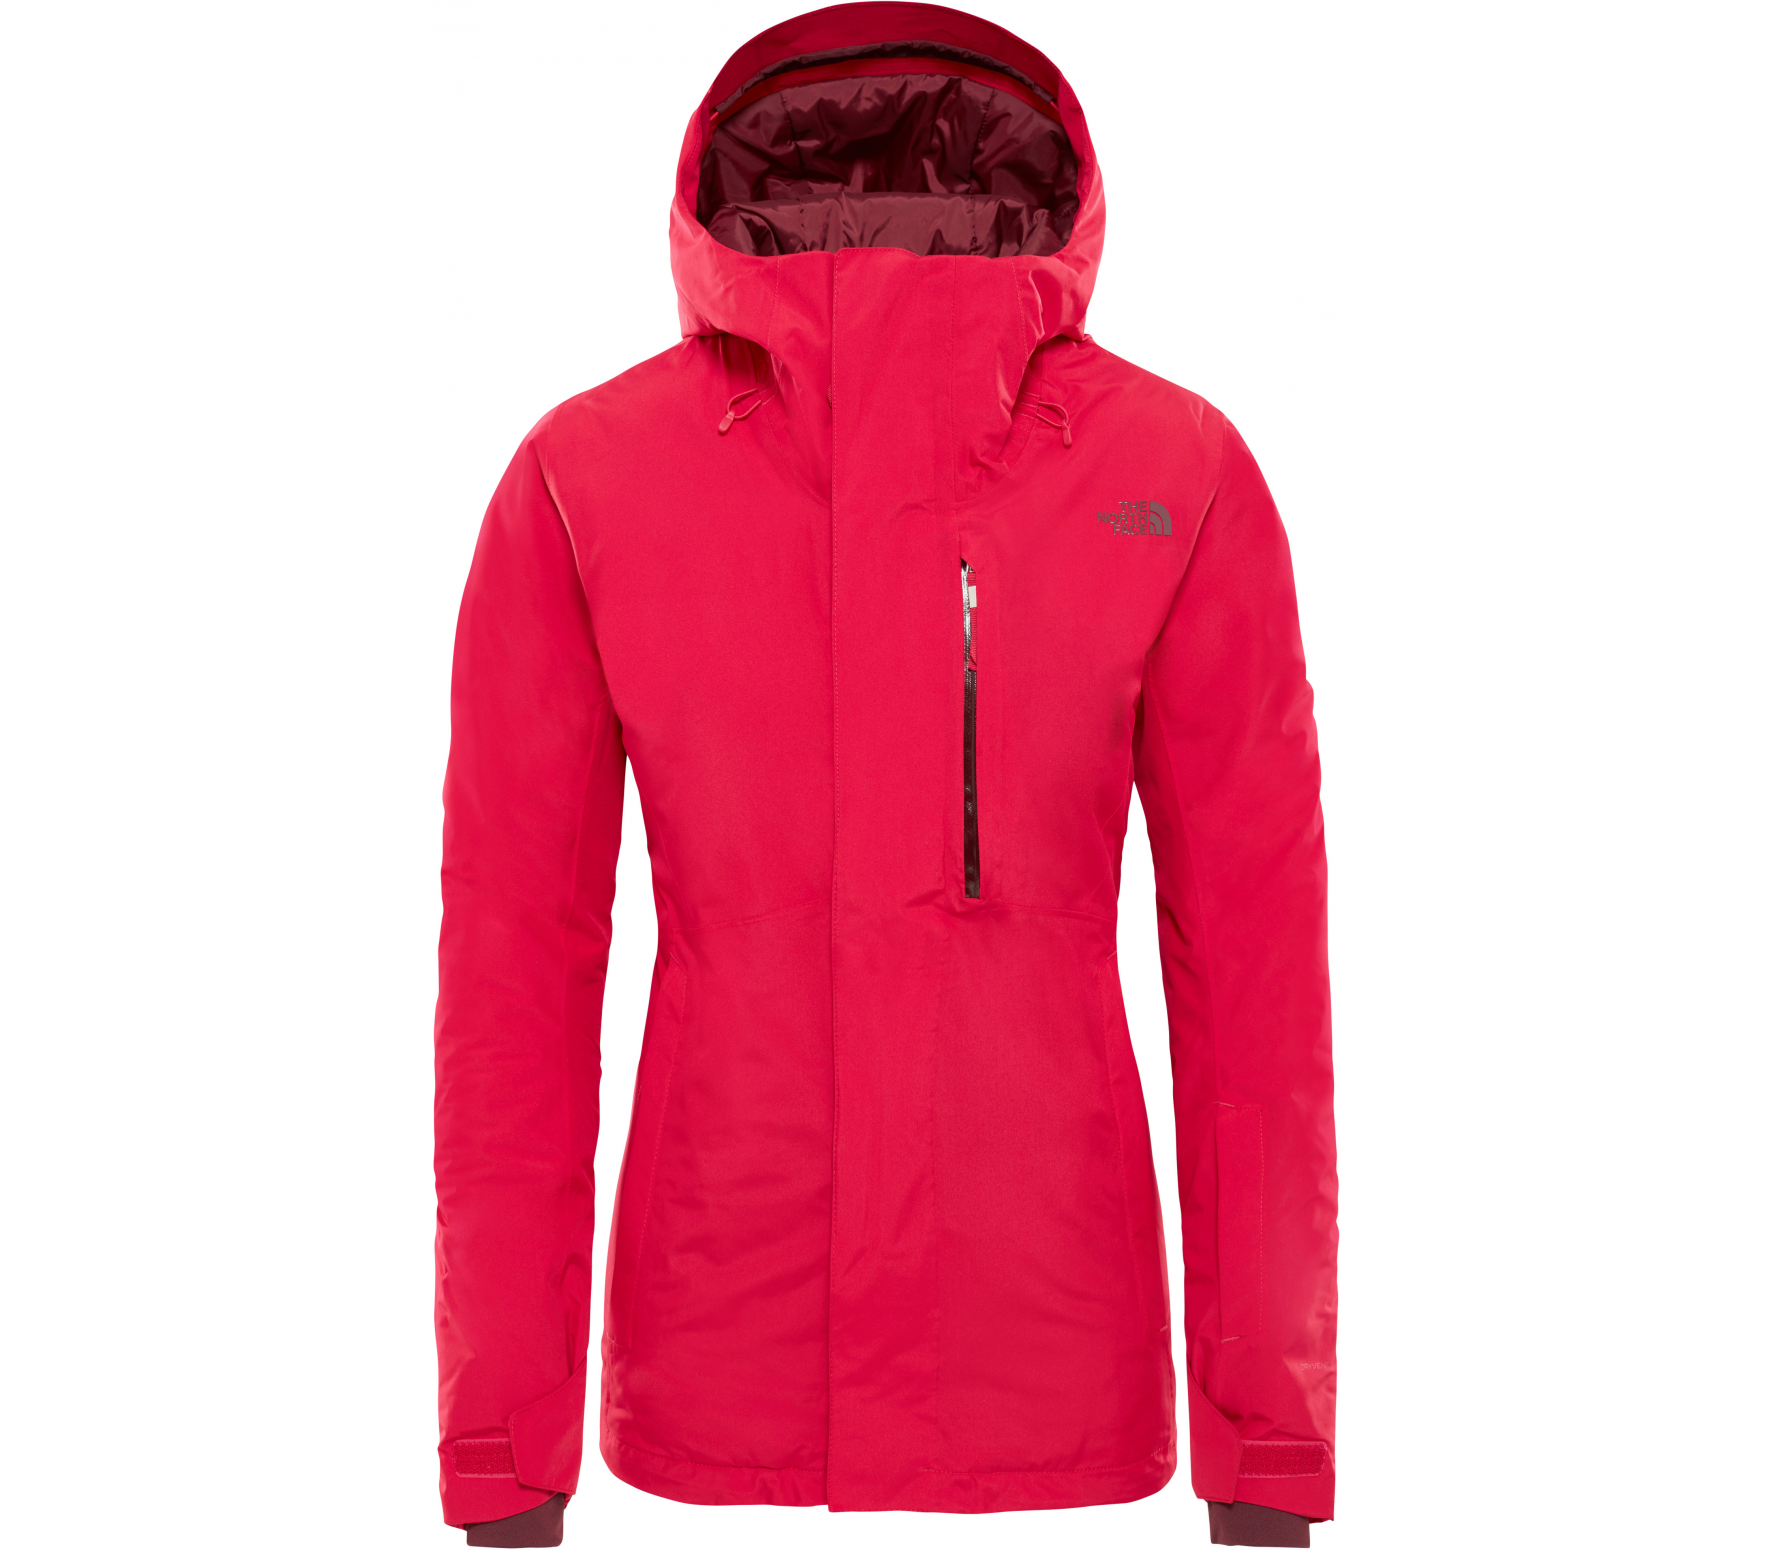 07d4f469e490d1 The North Face - Descendit Damen Skijacke (pink) im Online Shop von ...